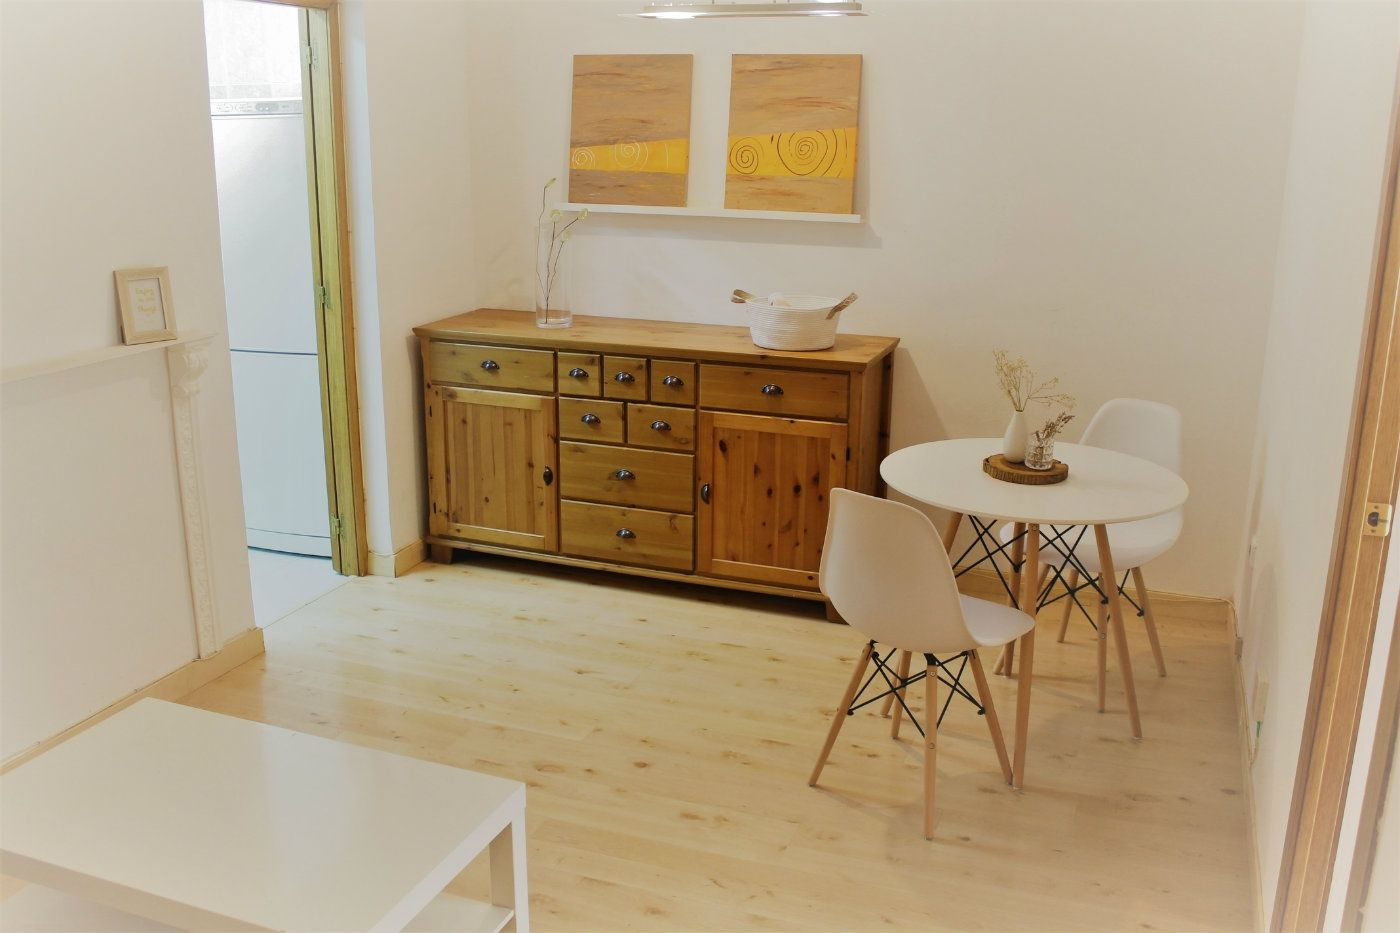 Location Appartement  Centre. Oportunidad en el centro